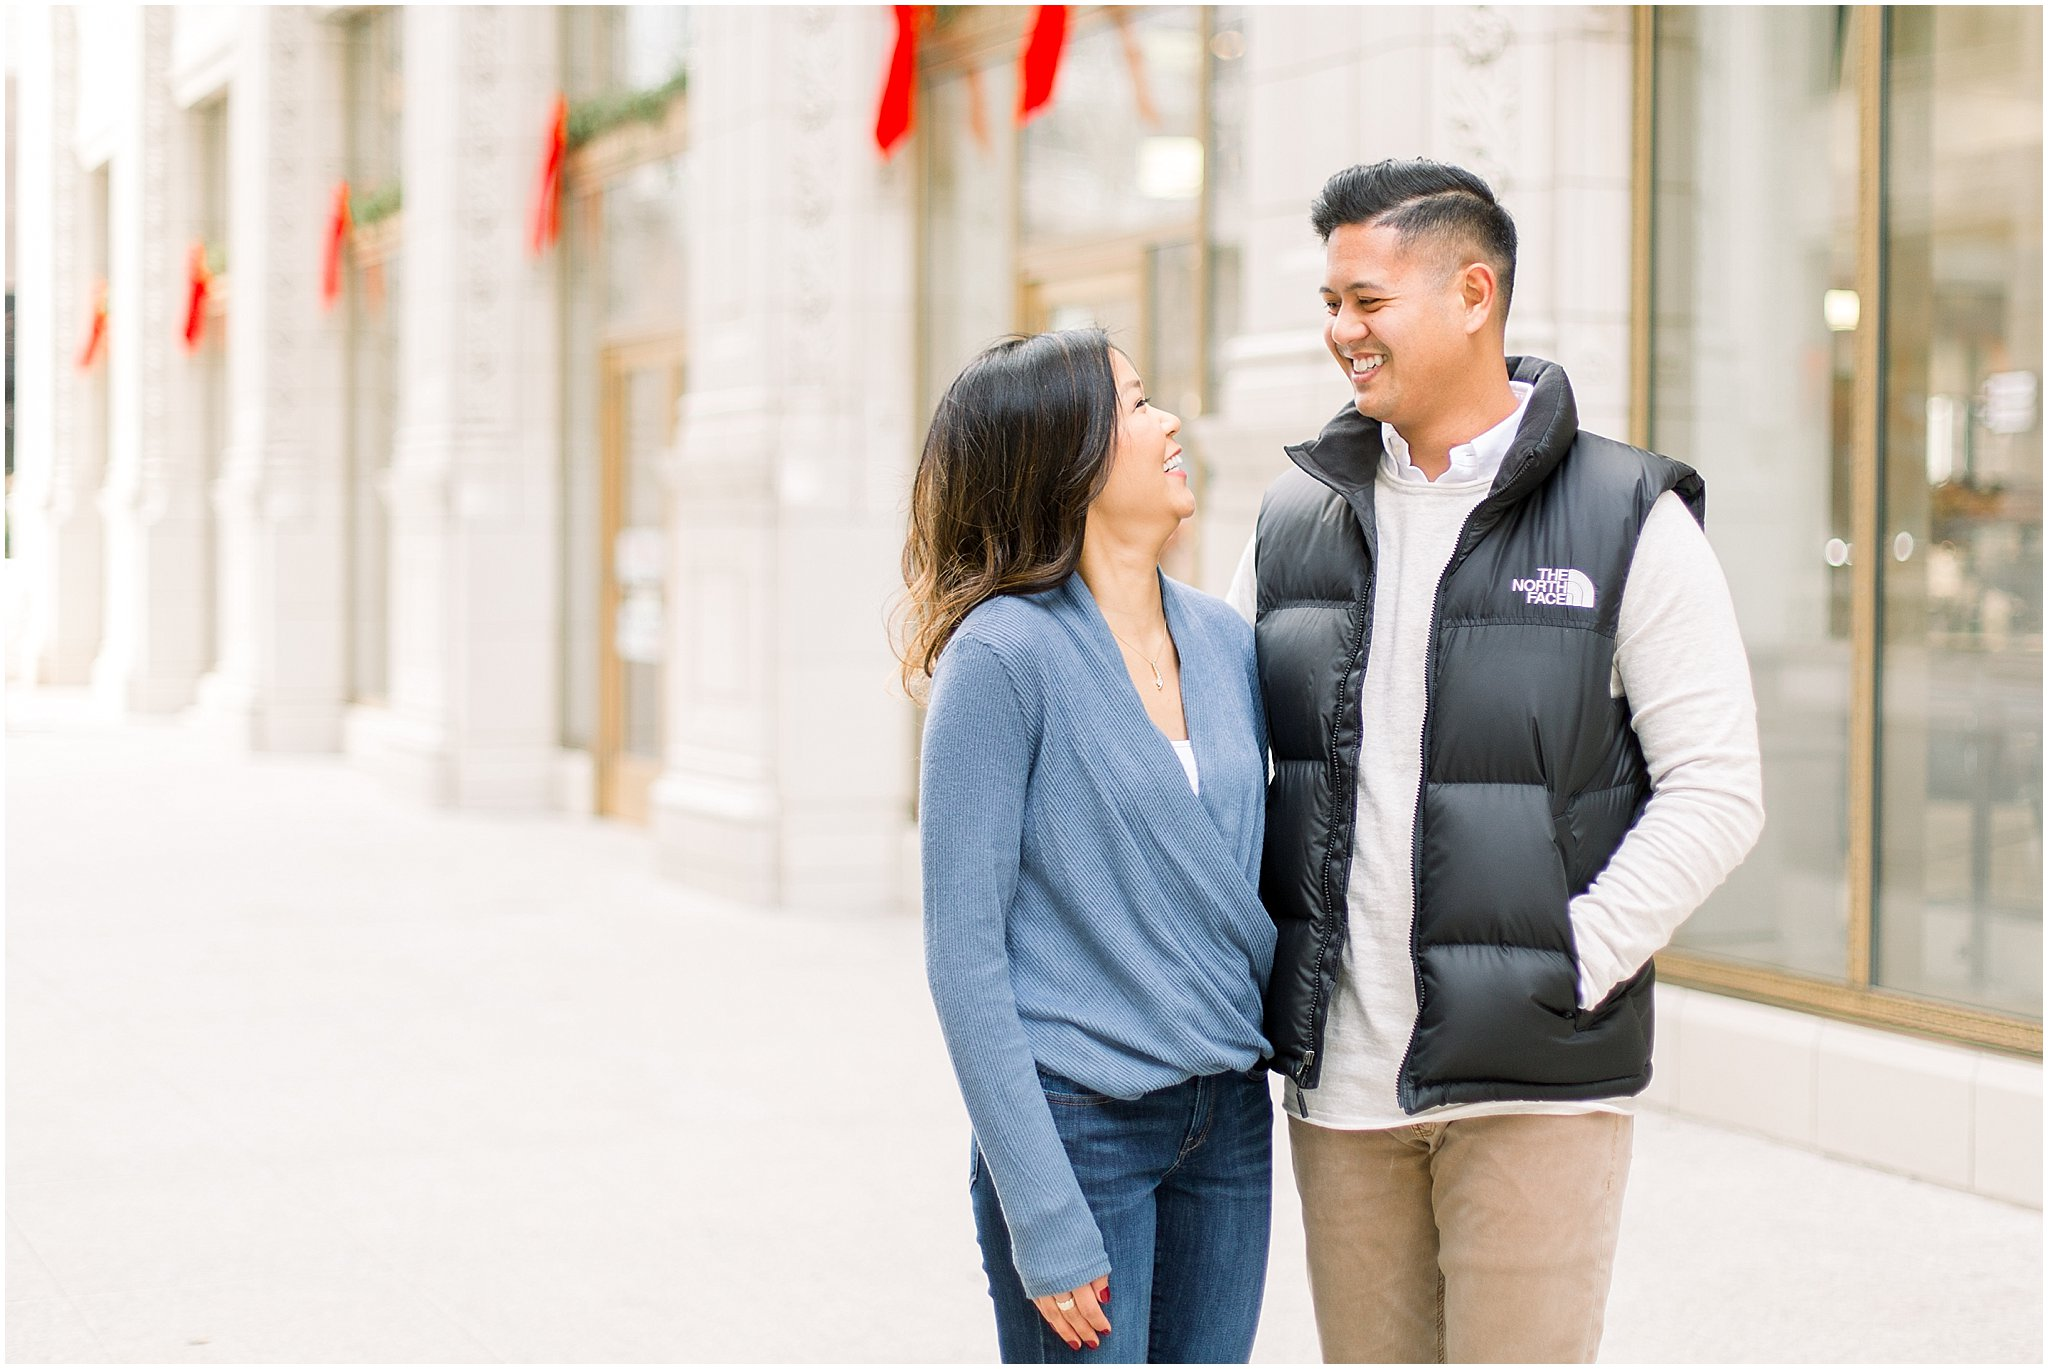 winter-downtown-engagement-session_0001.jpg